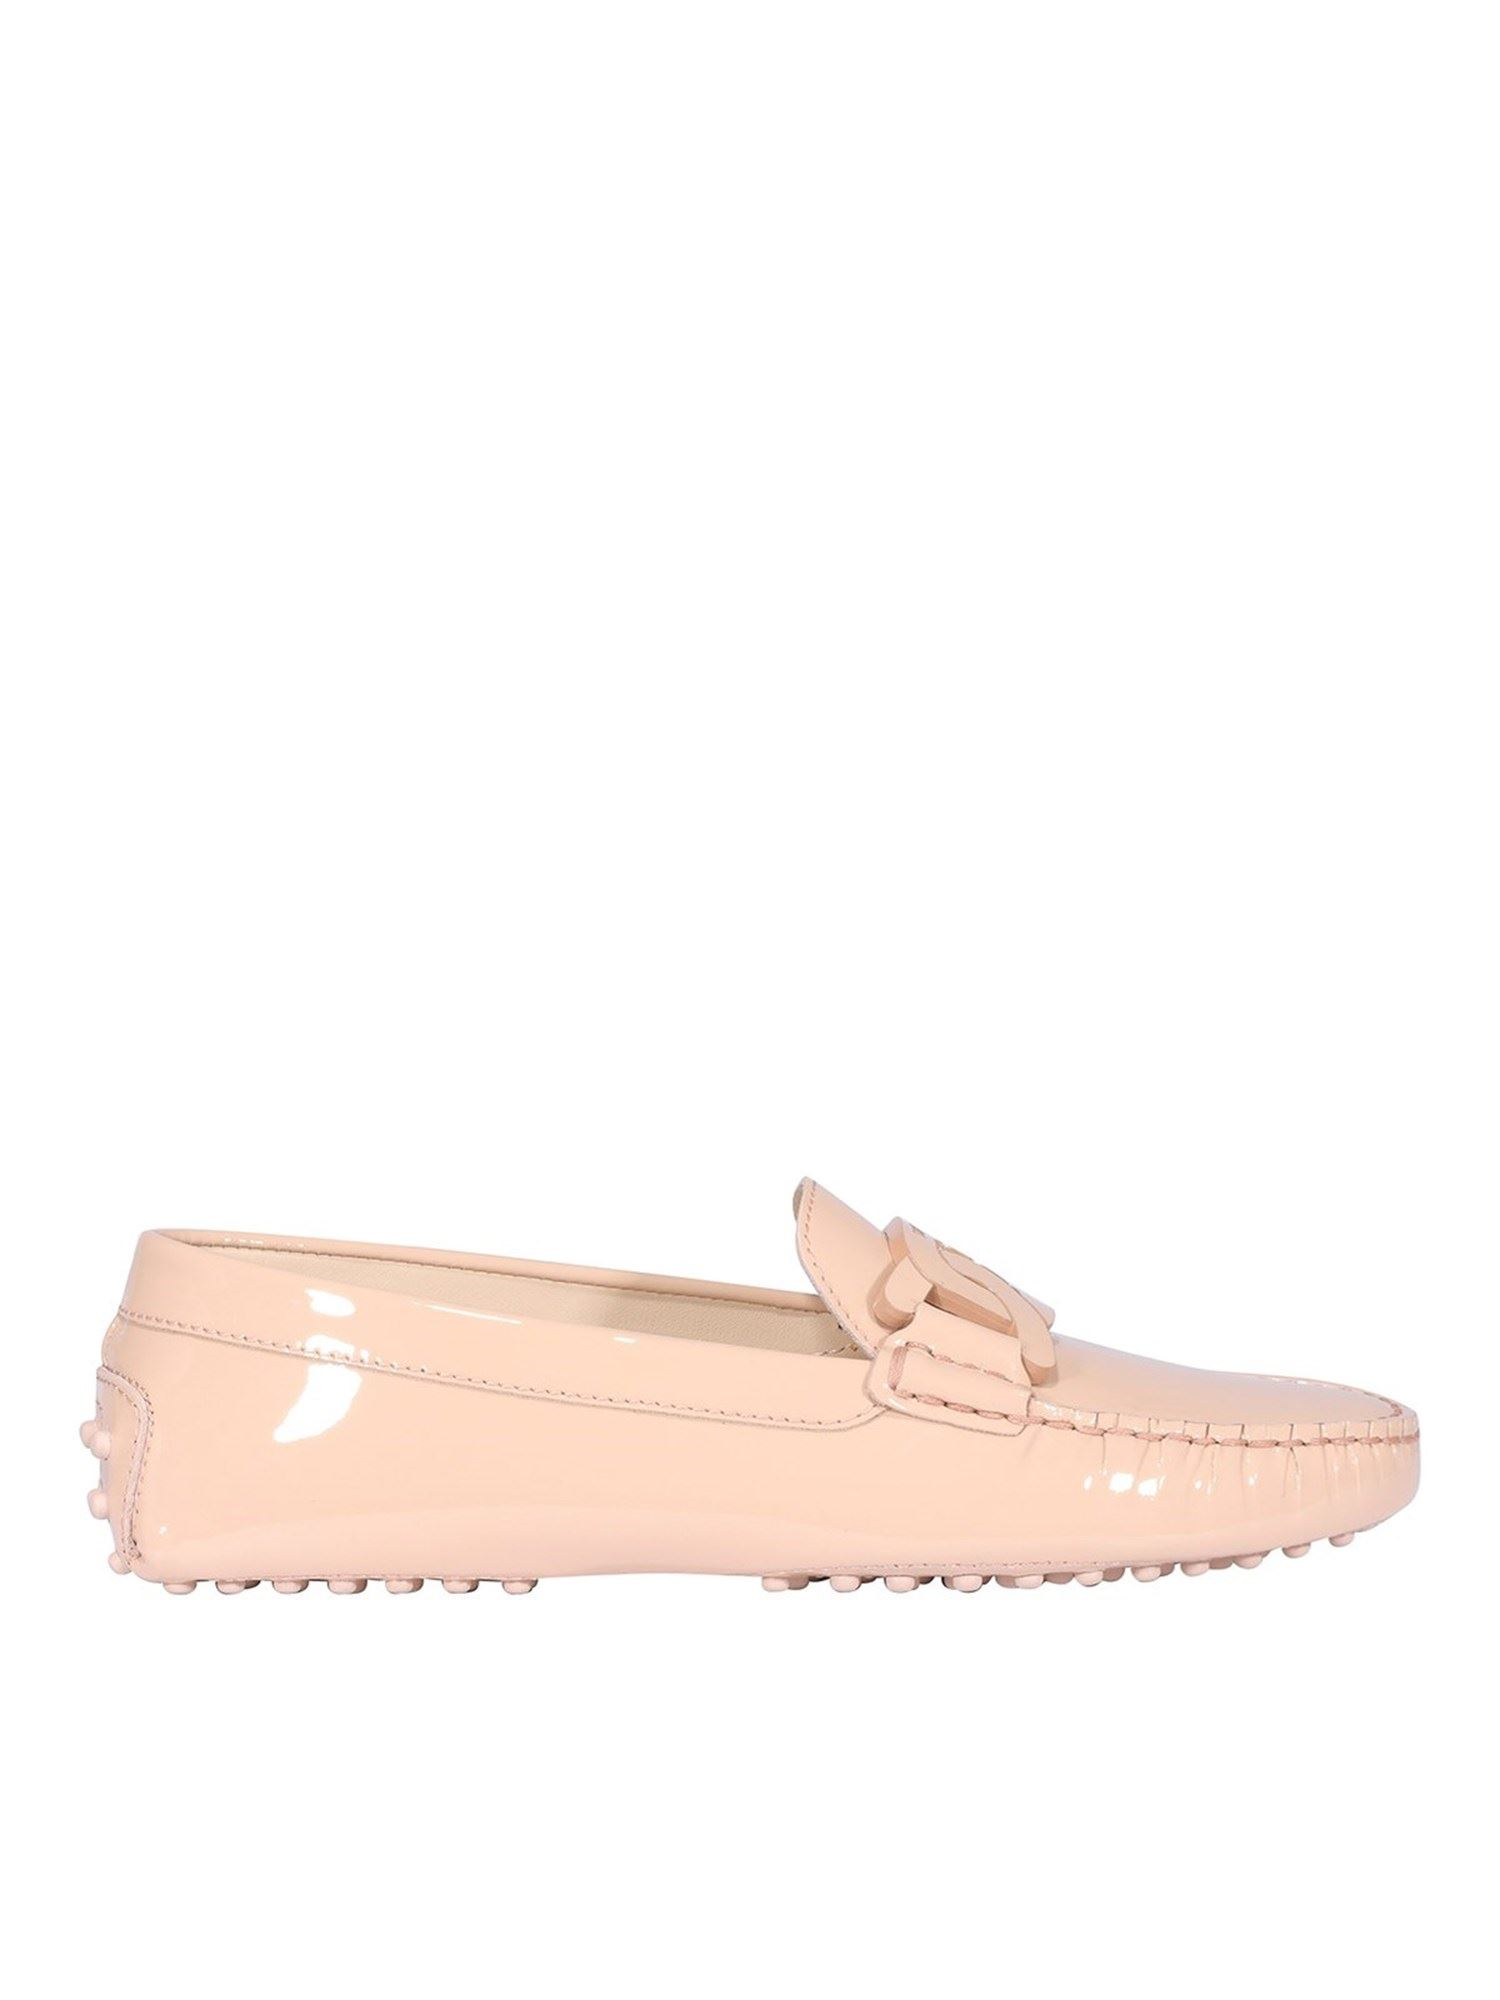 Tod's CHAIN TRIM PATENT LEATHER LOAFERS IN PINK